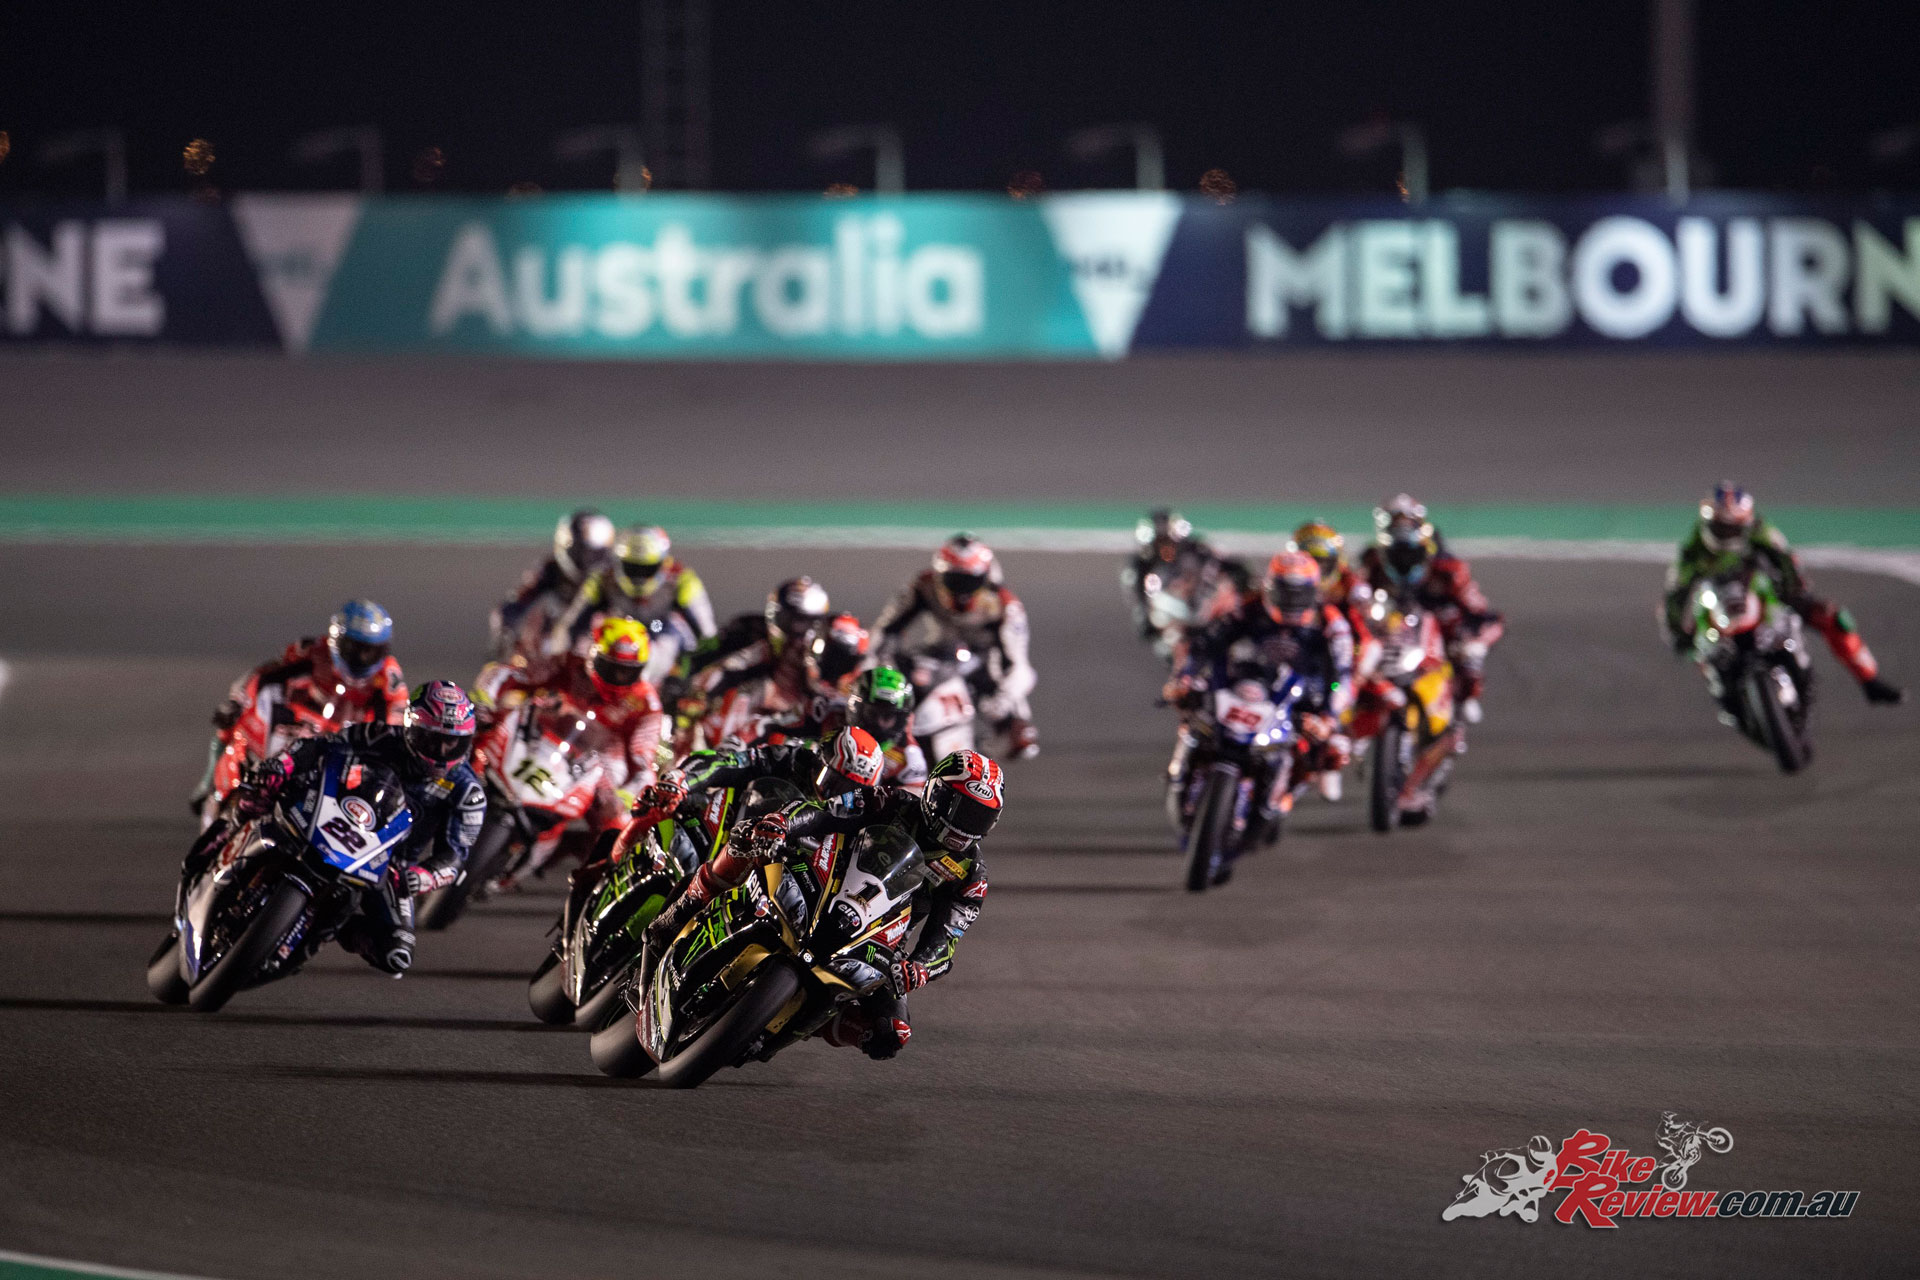 Jonathan Rea in the lead - Image by 2Snap/GeeBee